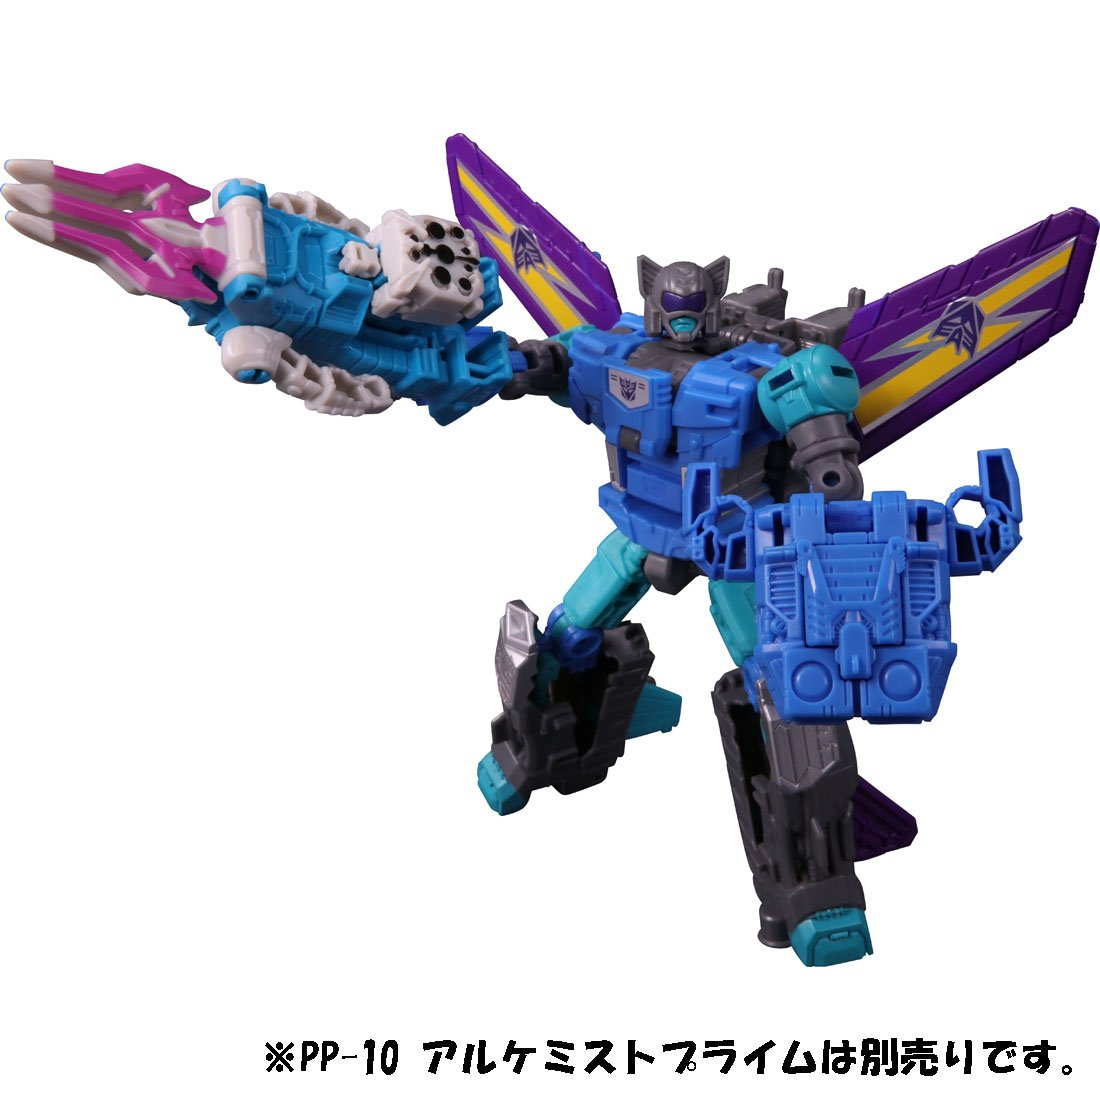 Takara Tomy Transformers Power The Prime PP-18 Black Wing